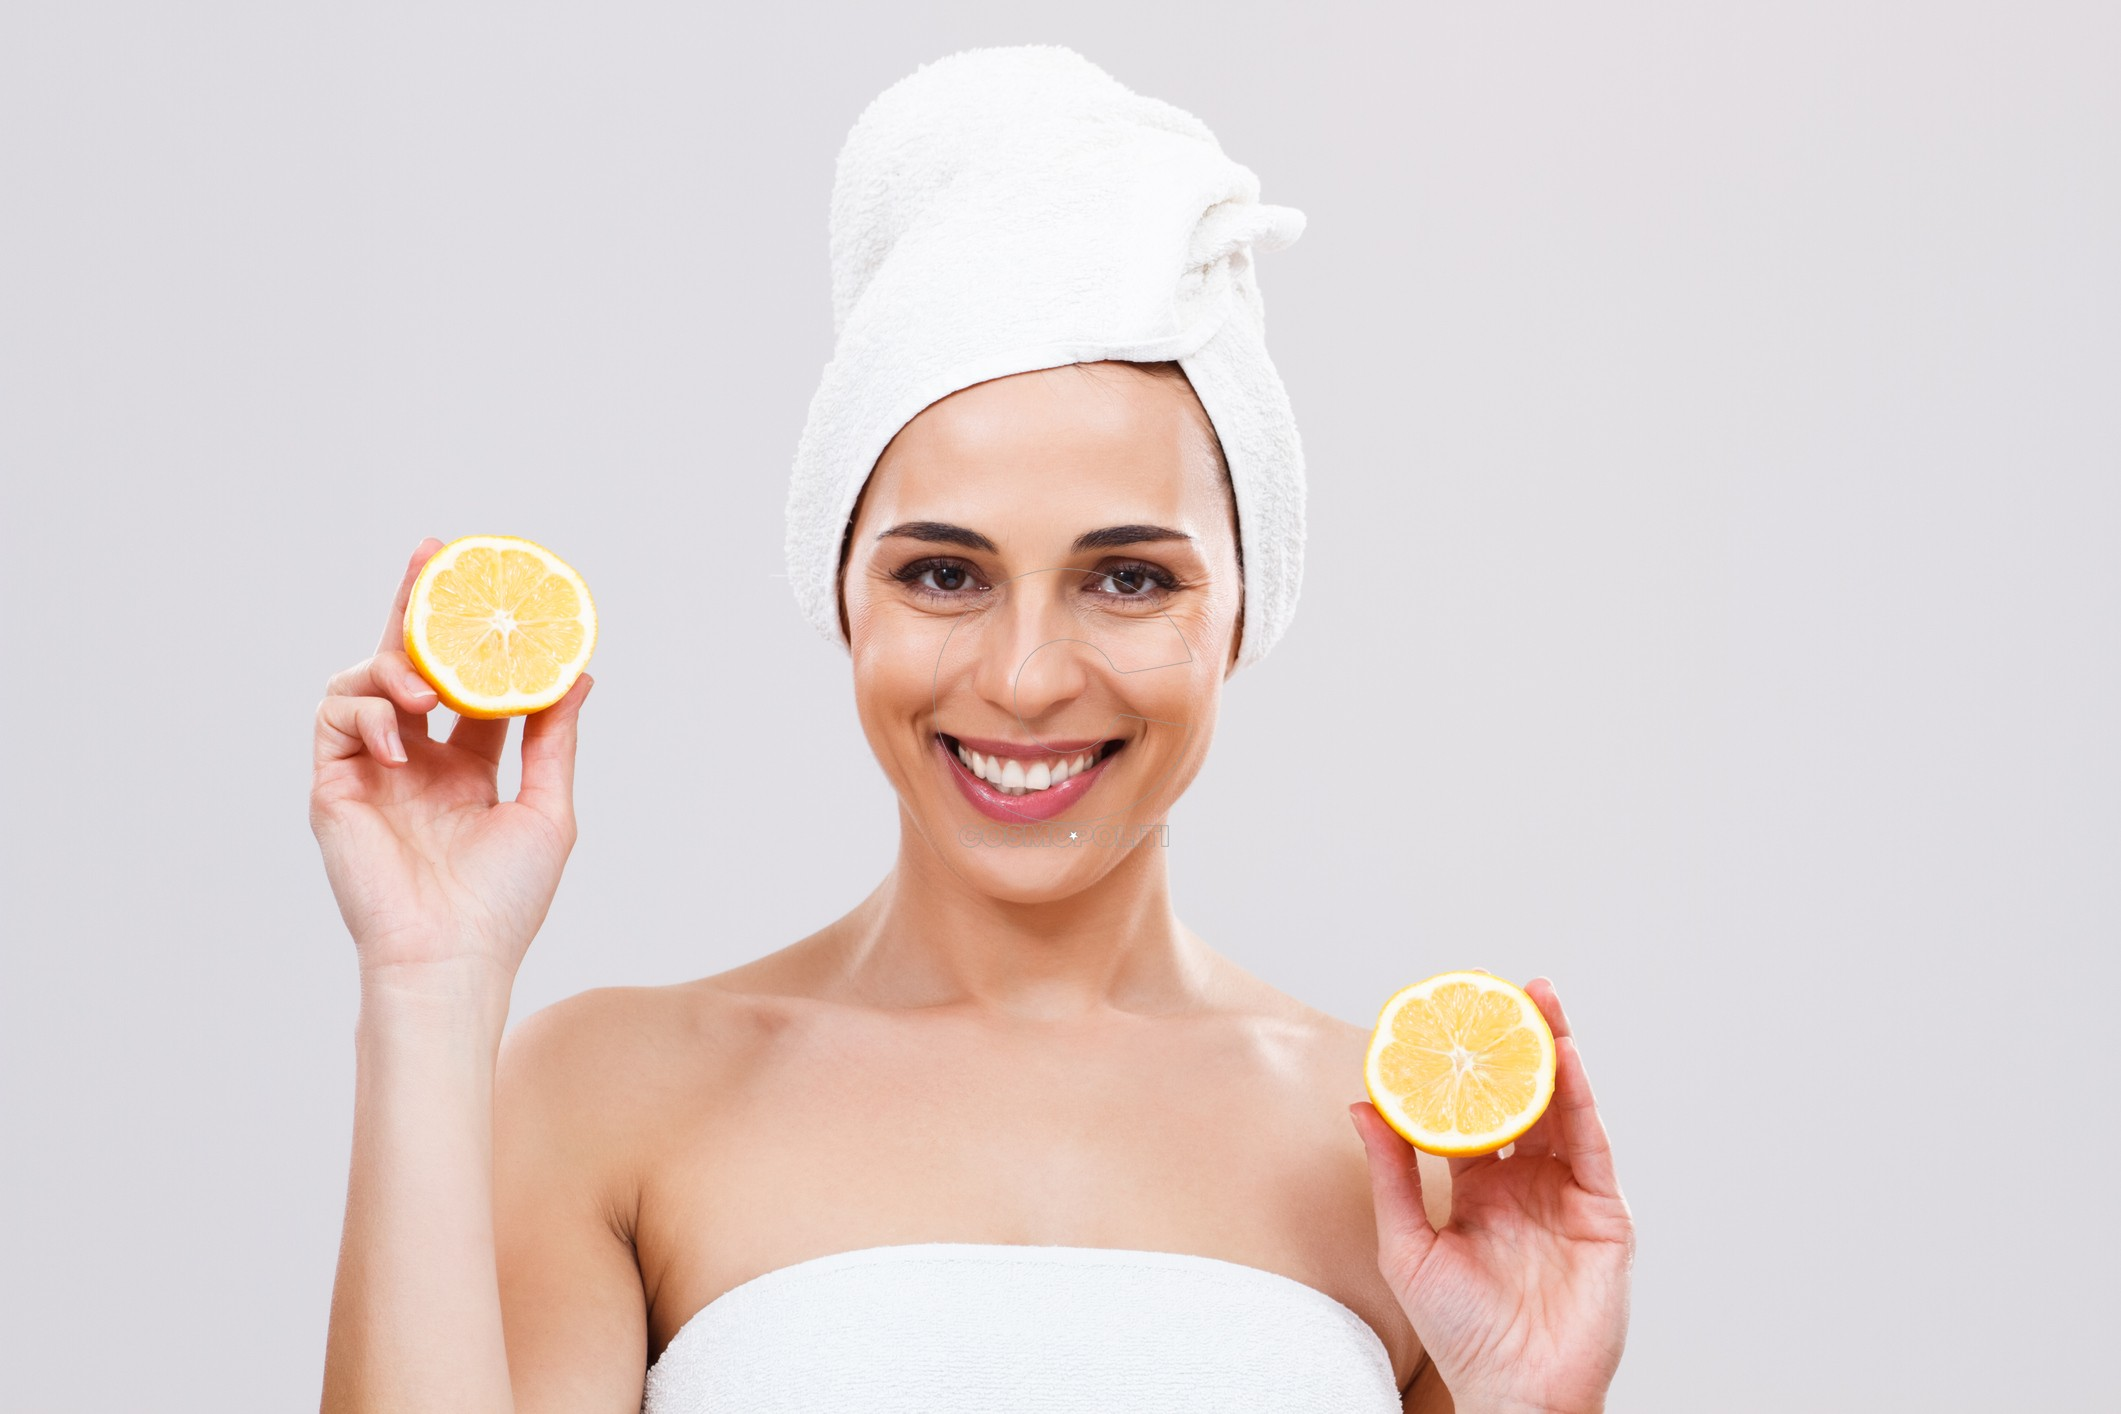 Beautiful woman is holding slices of lemon and looking at camera.